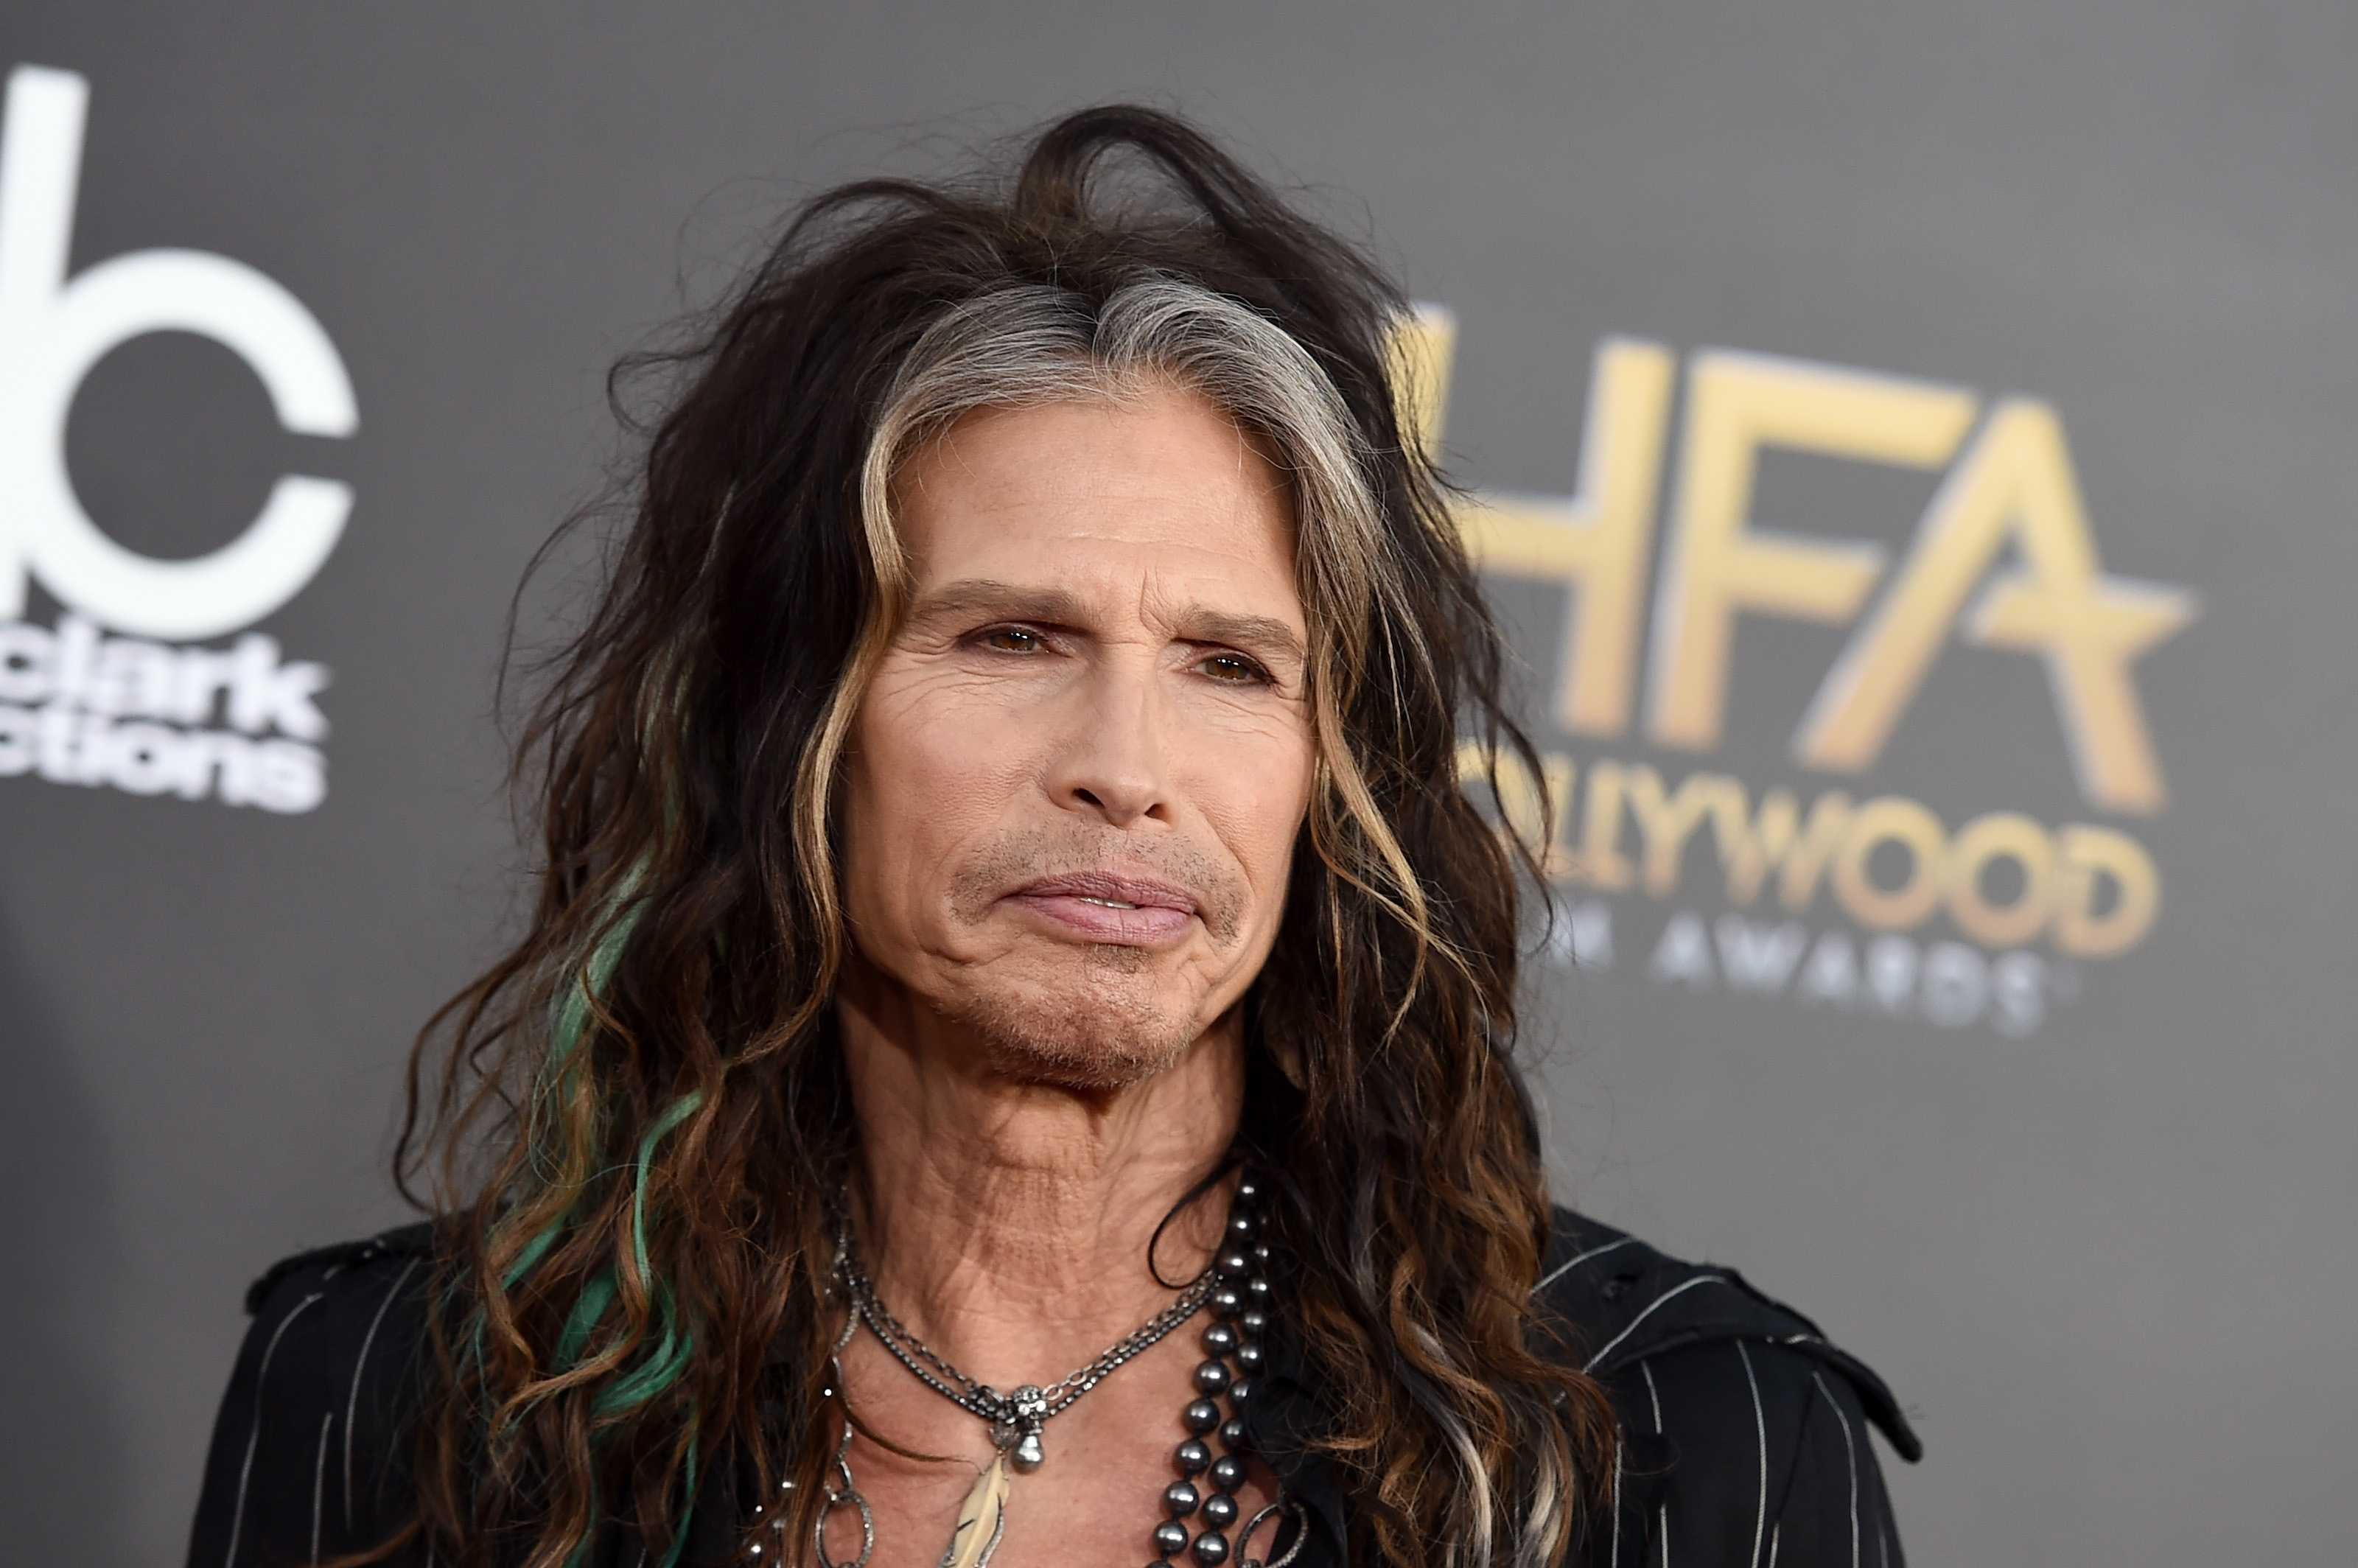 Aerosmith calls off tour because of Steven Tyler 'unexpected medical issues'